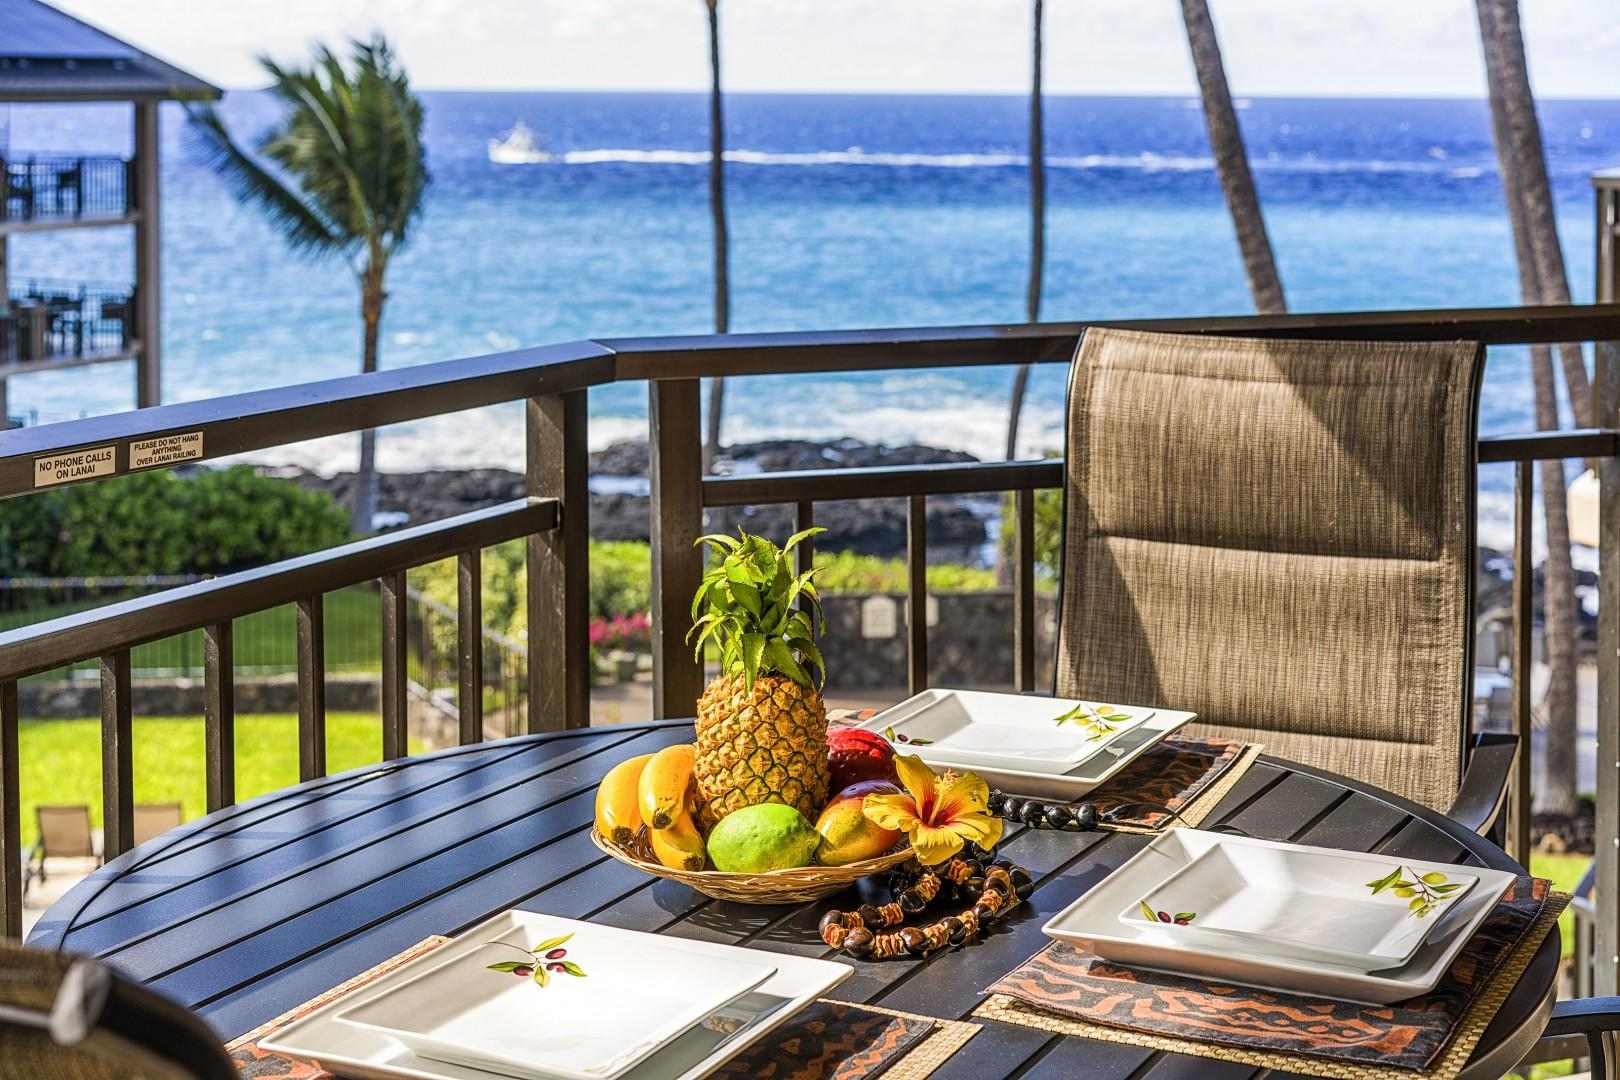 Breathtaking views of the ocean from the Lanai!